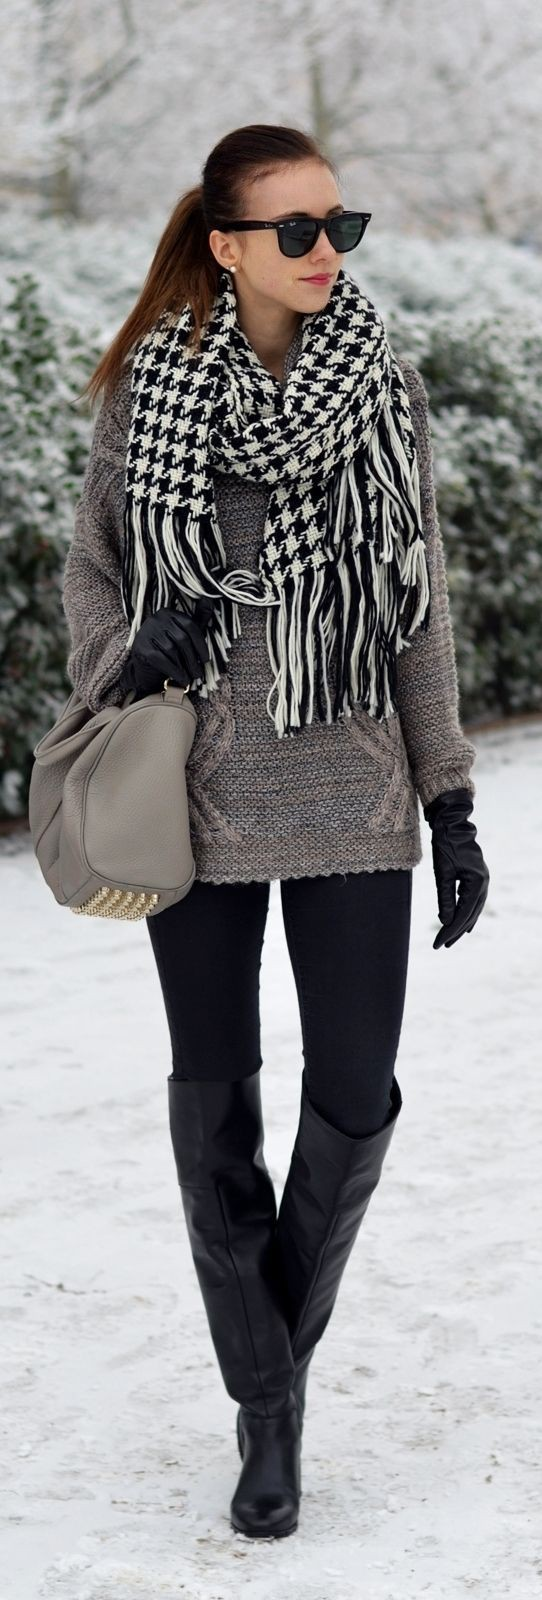 Black and grey winter outfits